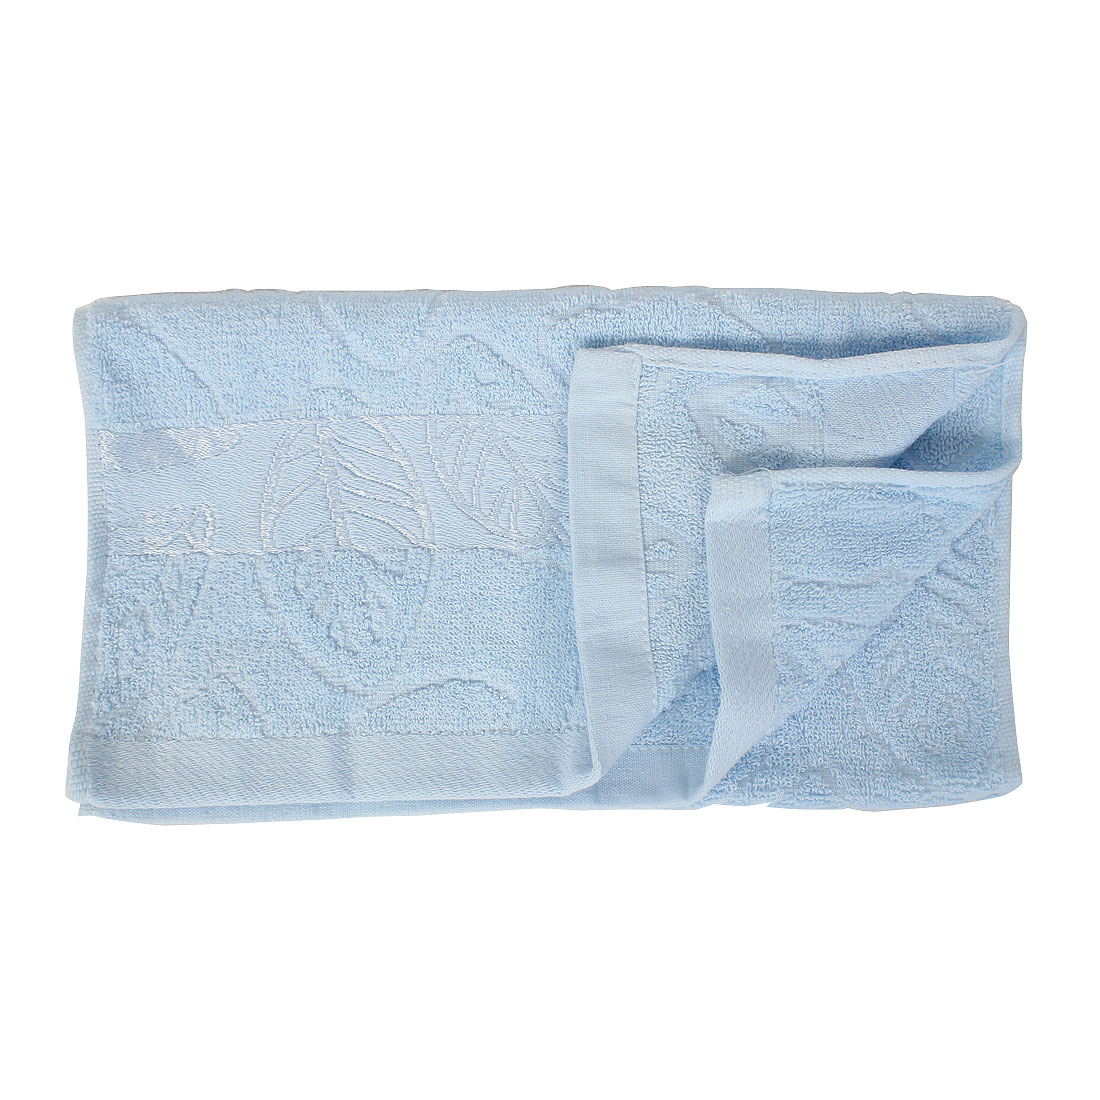 Terrycloth Leaves Pattern Shower Bath Towel 72cm x 33cm Light Blue